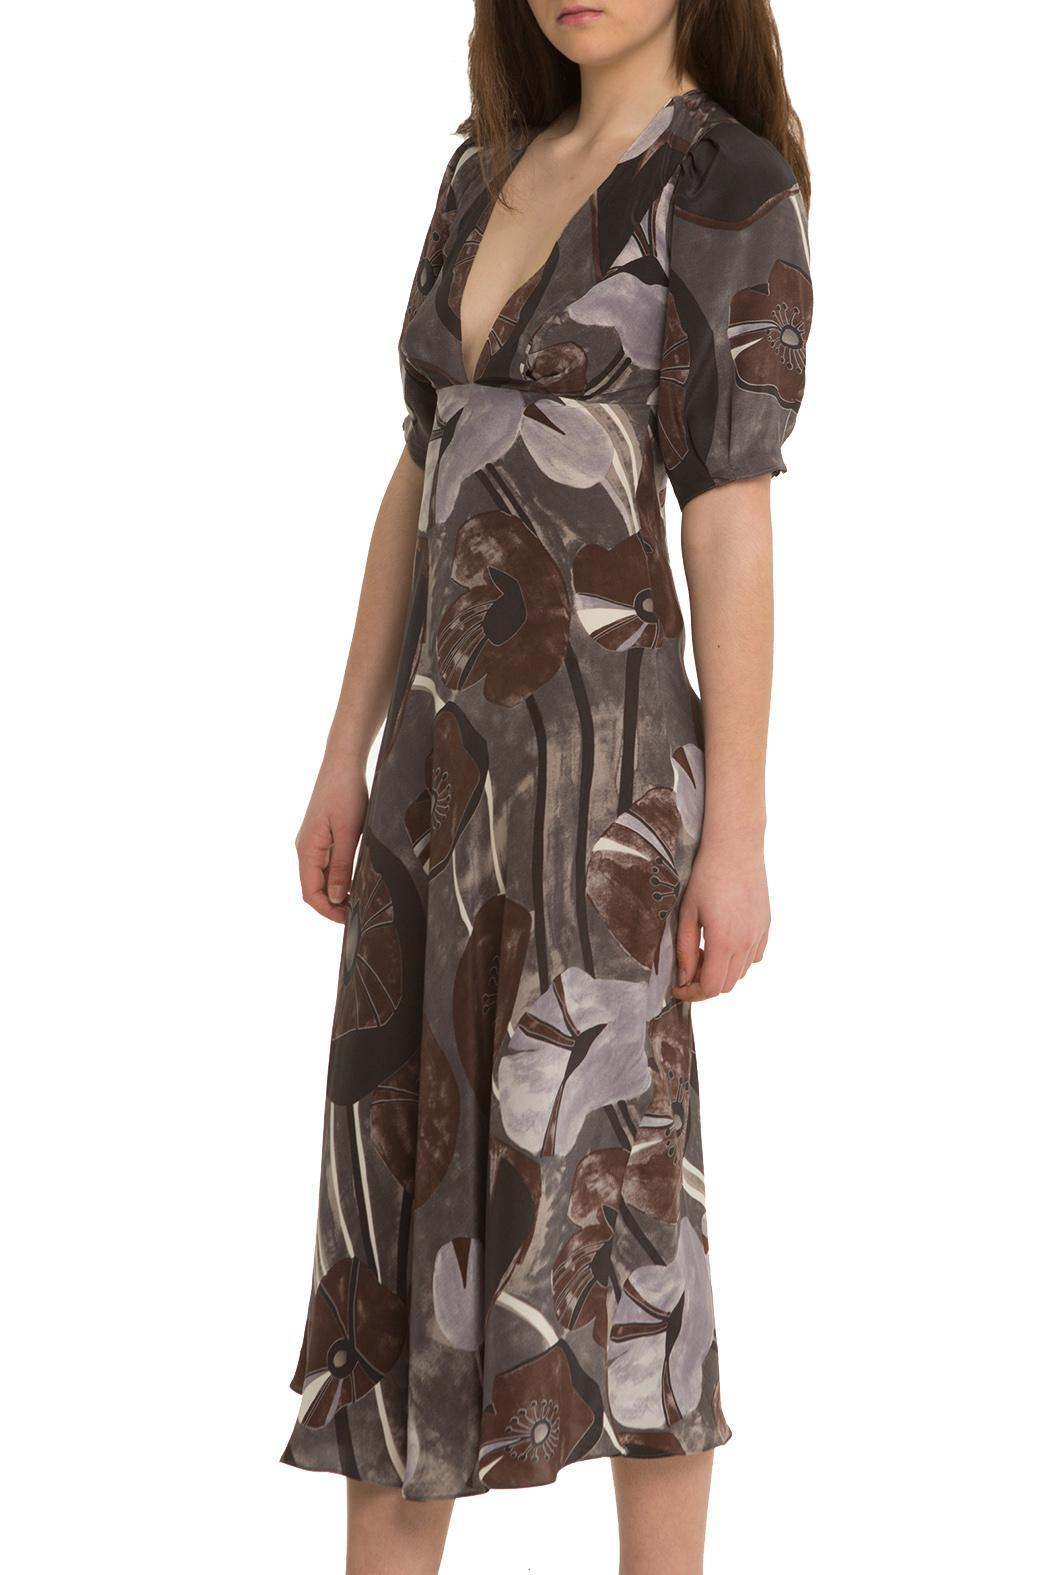 OHLENDORF atelier Silk Floral Dress - Front Cropped Image